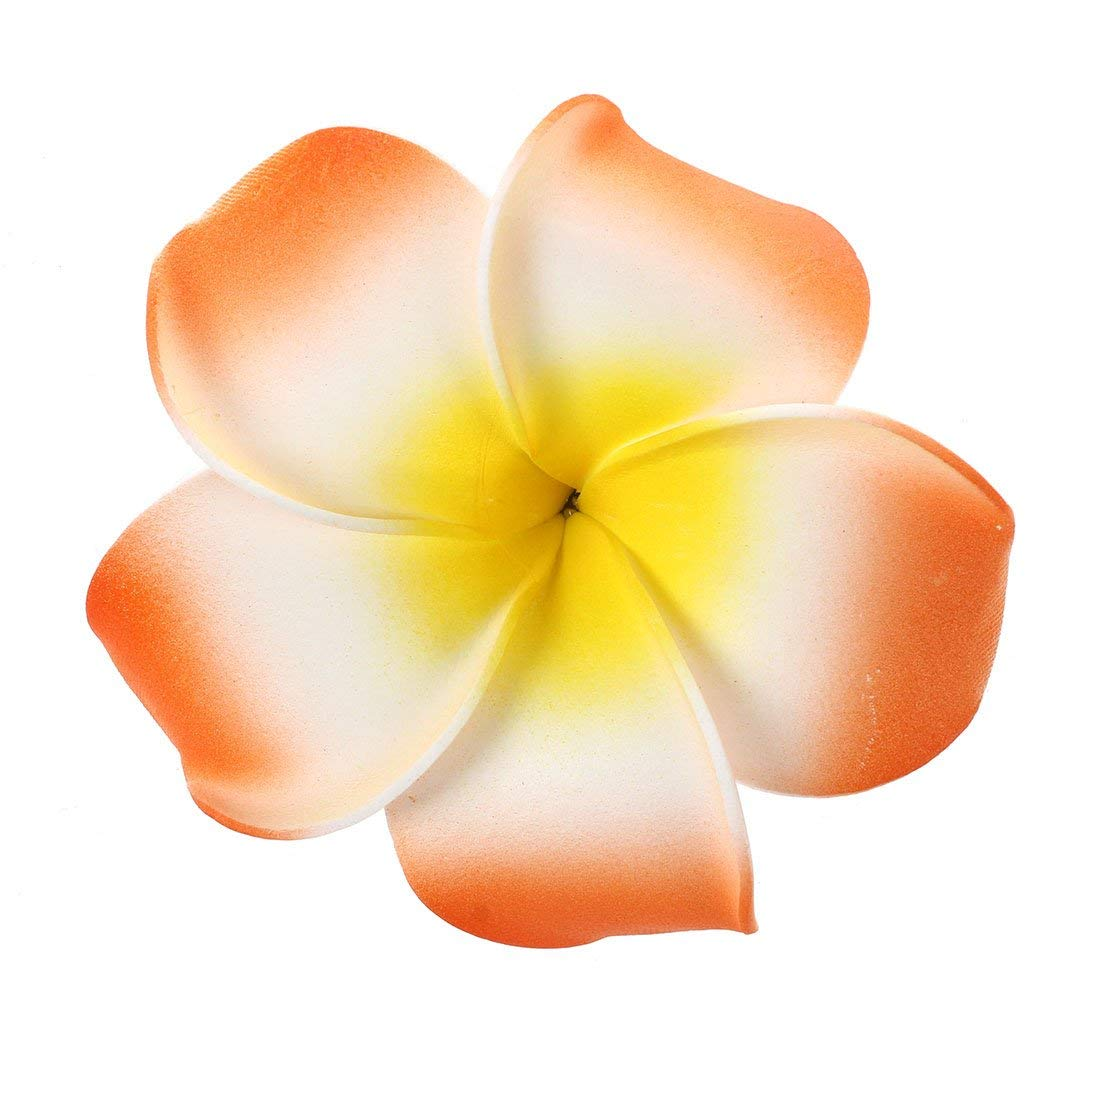 Cheap wedding plumeria find wedding plumeria deals on line at get quotations toogoor wedding party hawaiian frangipani plumeria flower foam hairclip hair clip 9cm orange izmirmasajfo